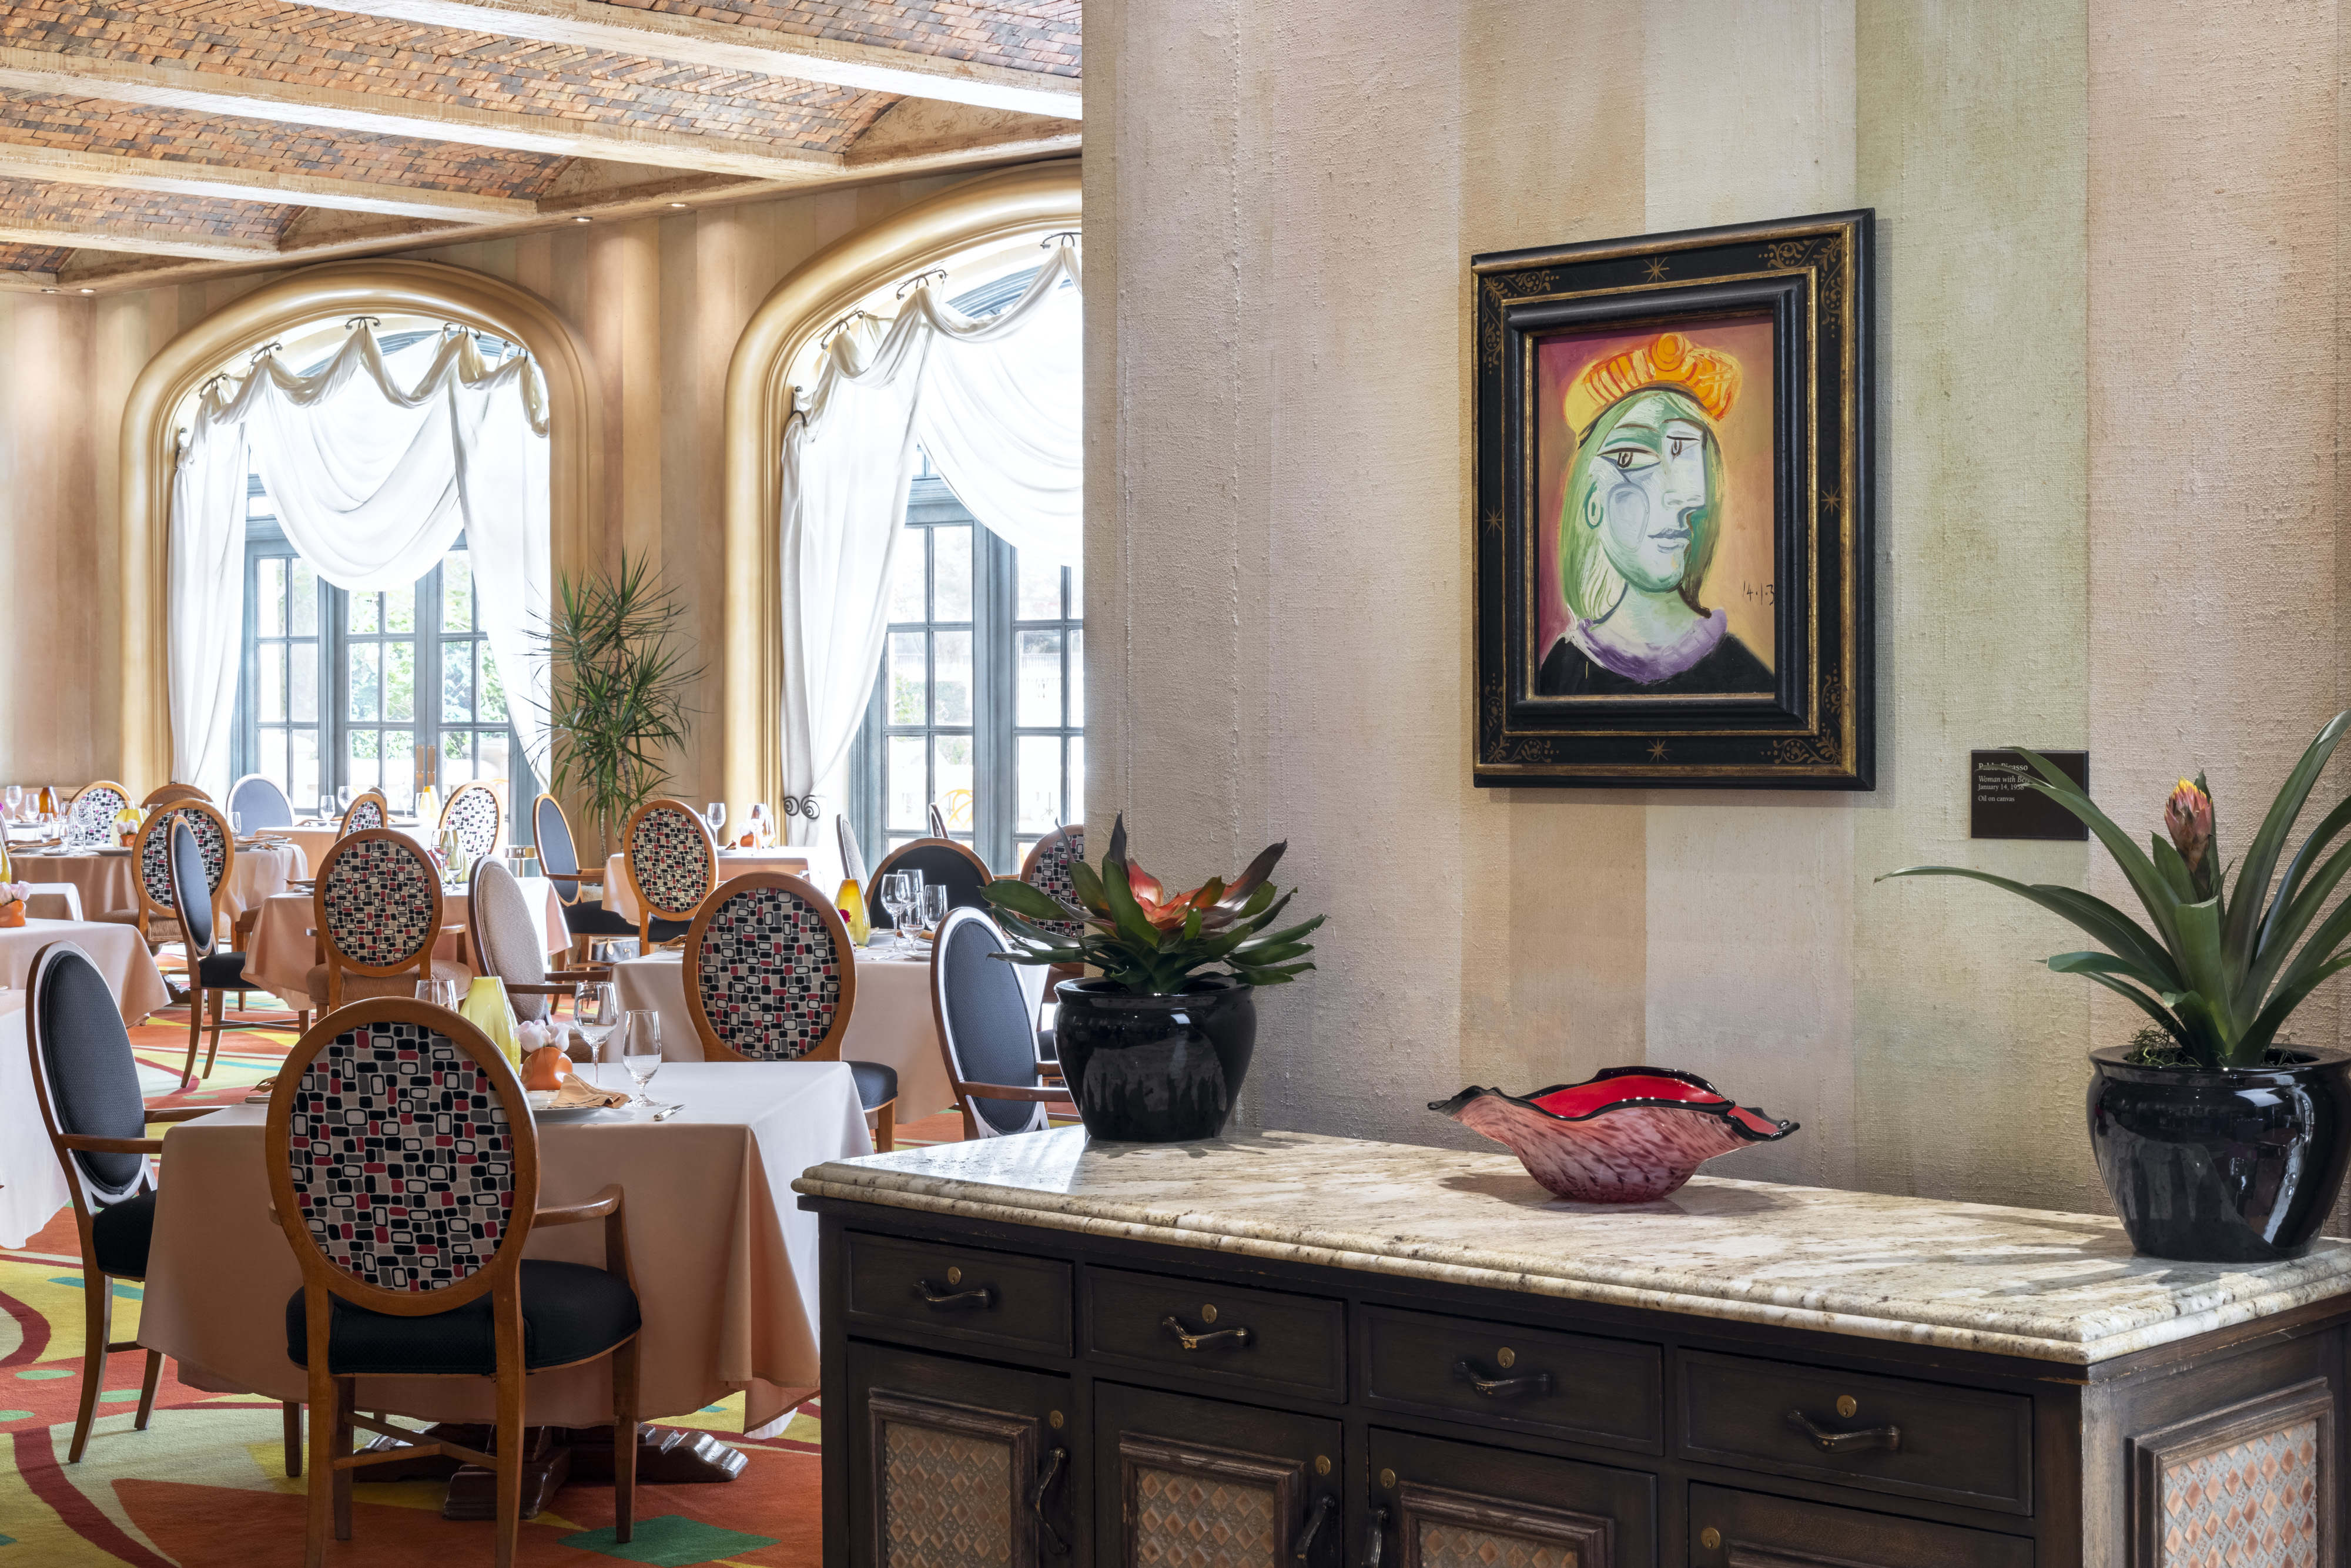 A cubist painting hangs over a sideboard in a restaurant